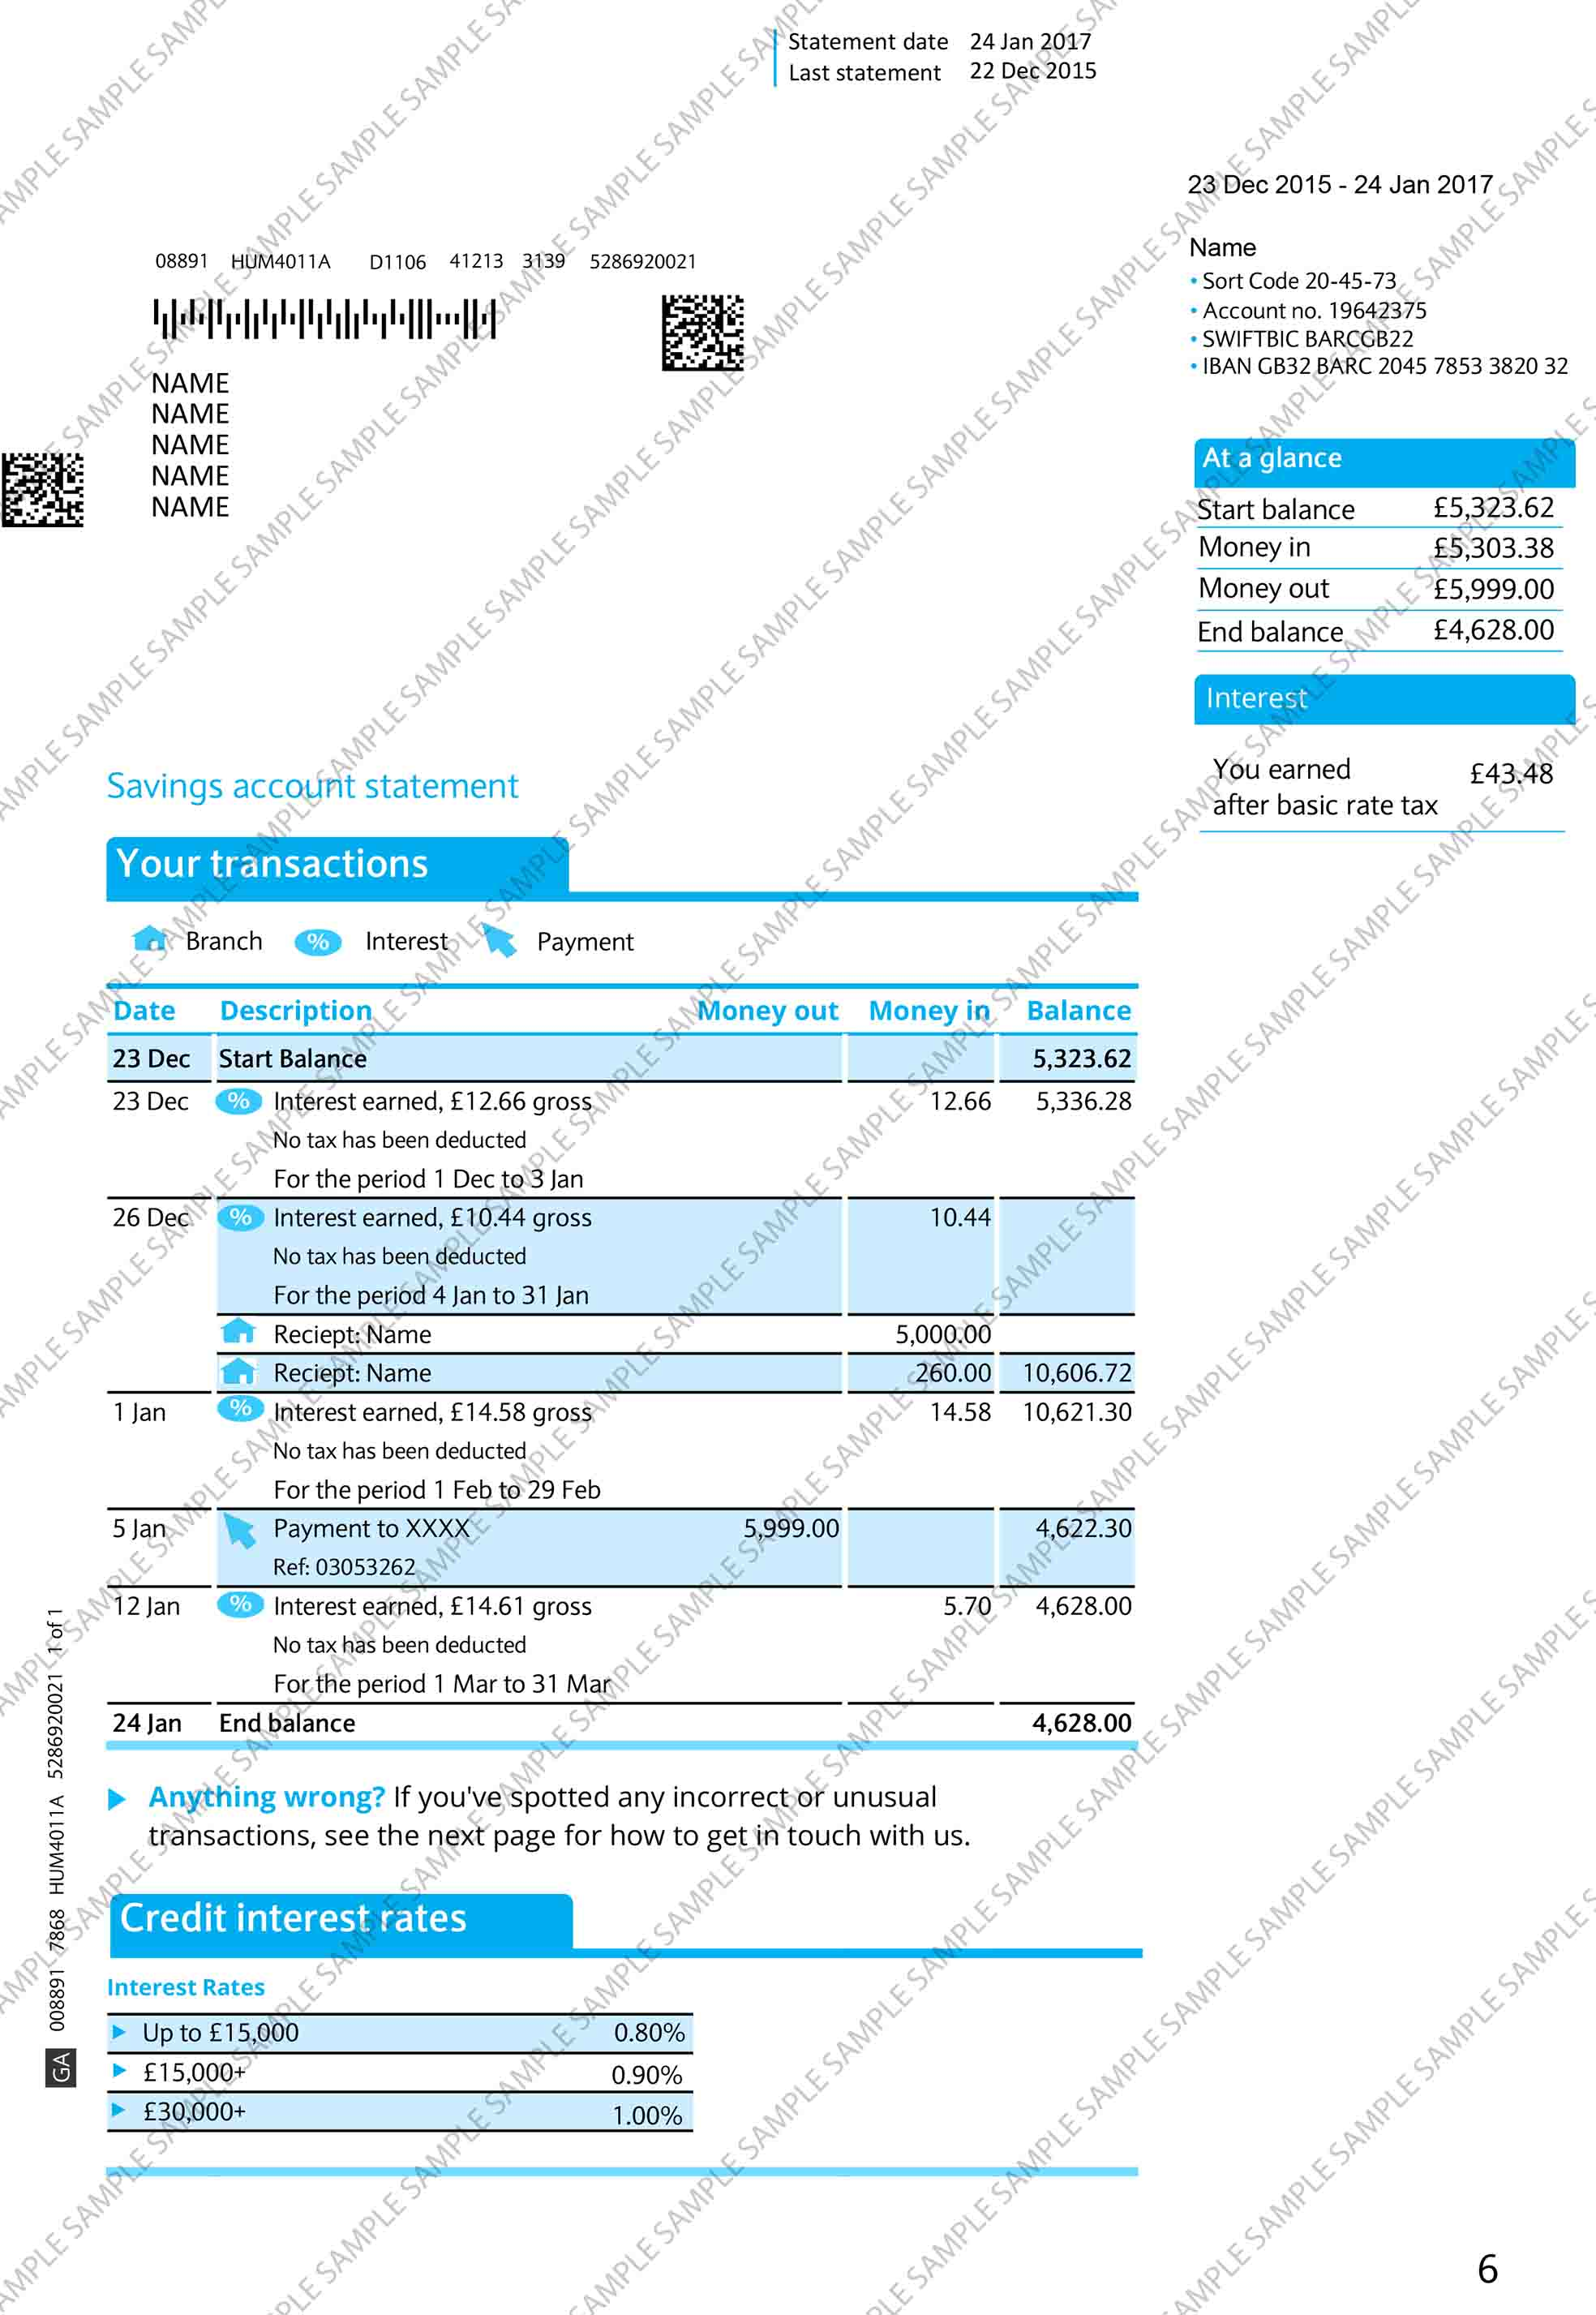 print bank statement online barclays